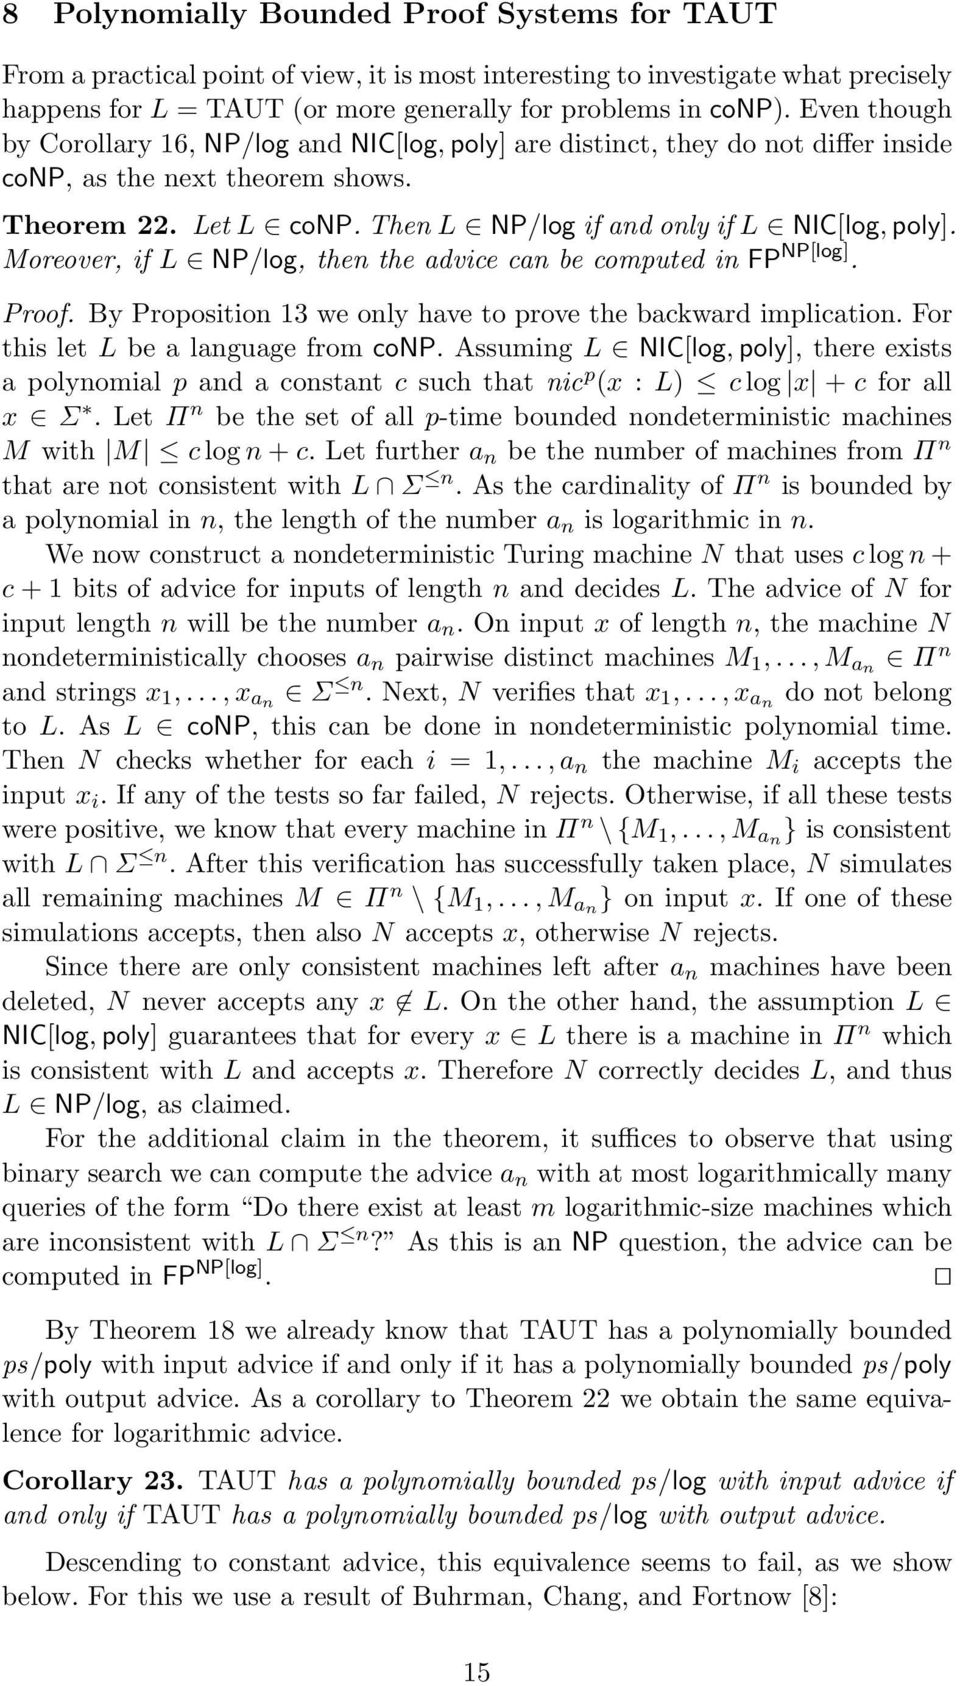 Moreover, if L NP/log, then the advice can be computed in FP NP[log]. Proof. By Proposition 13 we only have to prove the backward implication. For this let L be a language from conp.